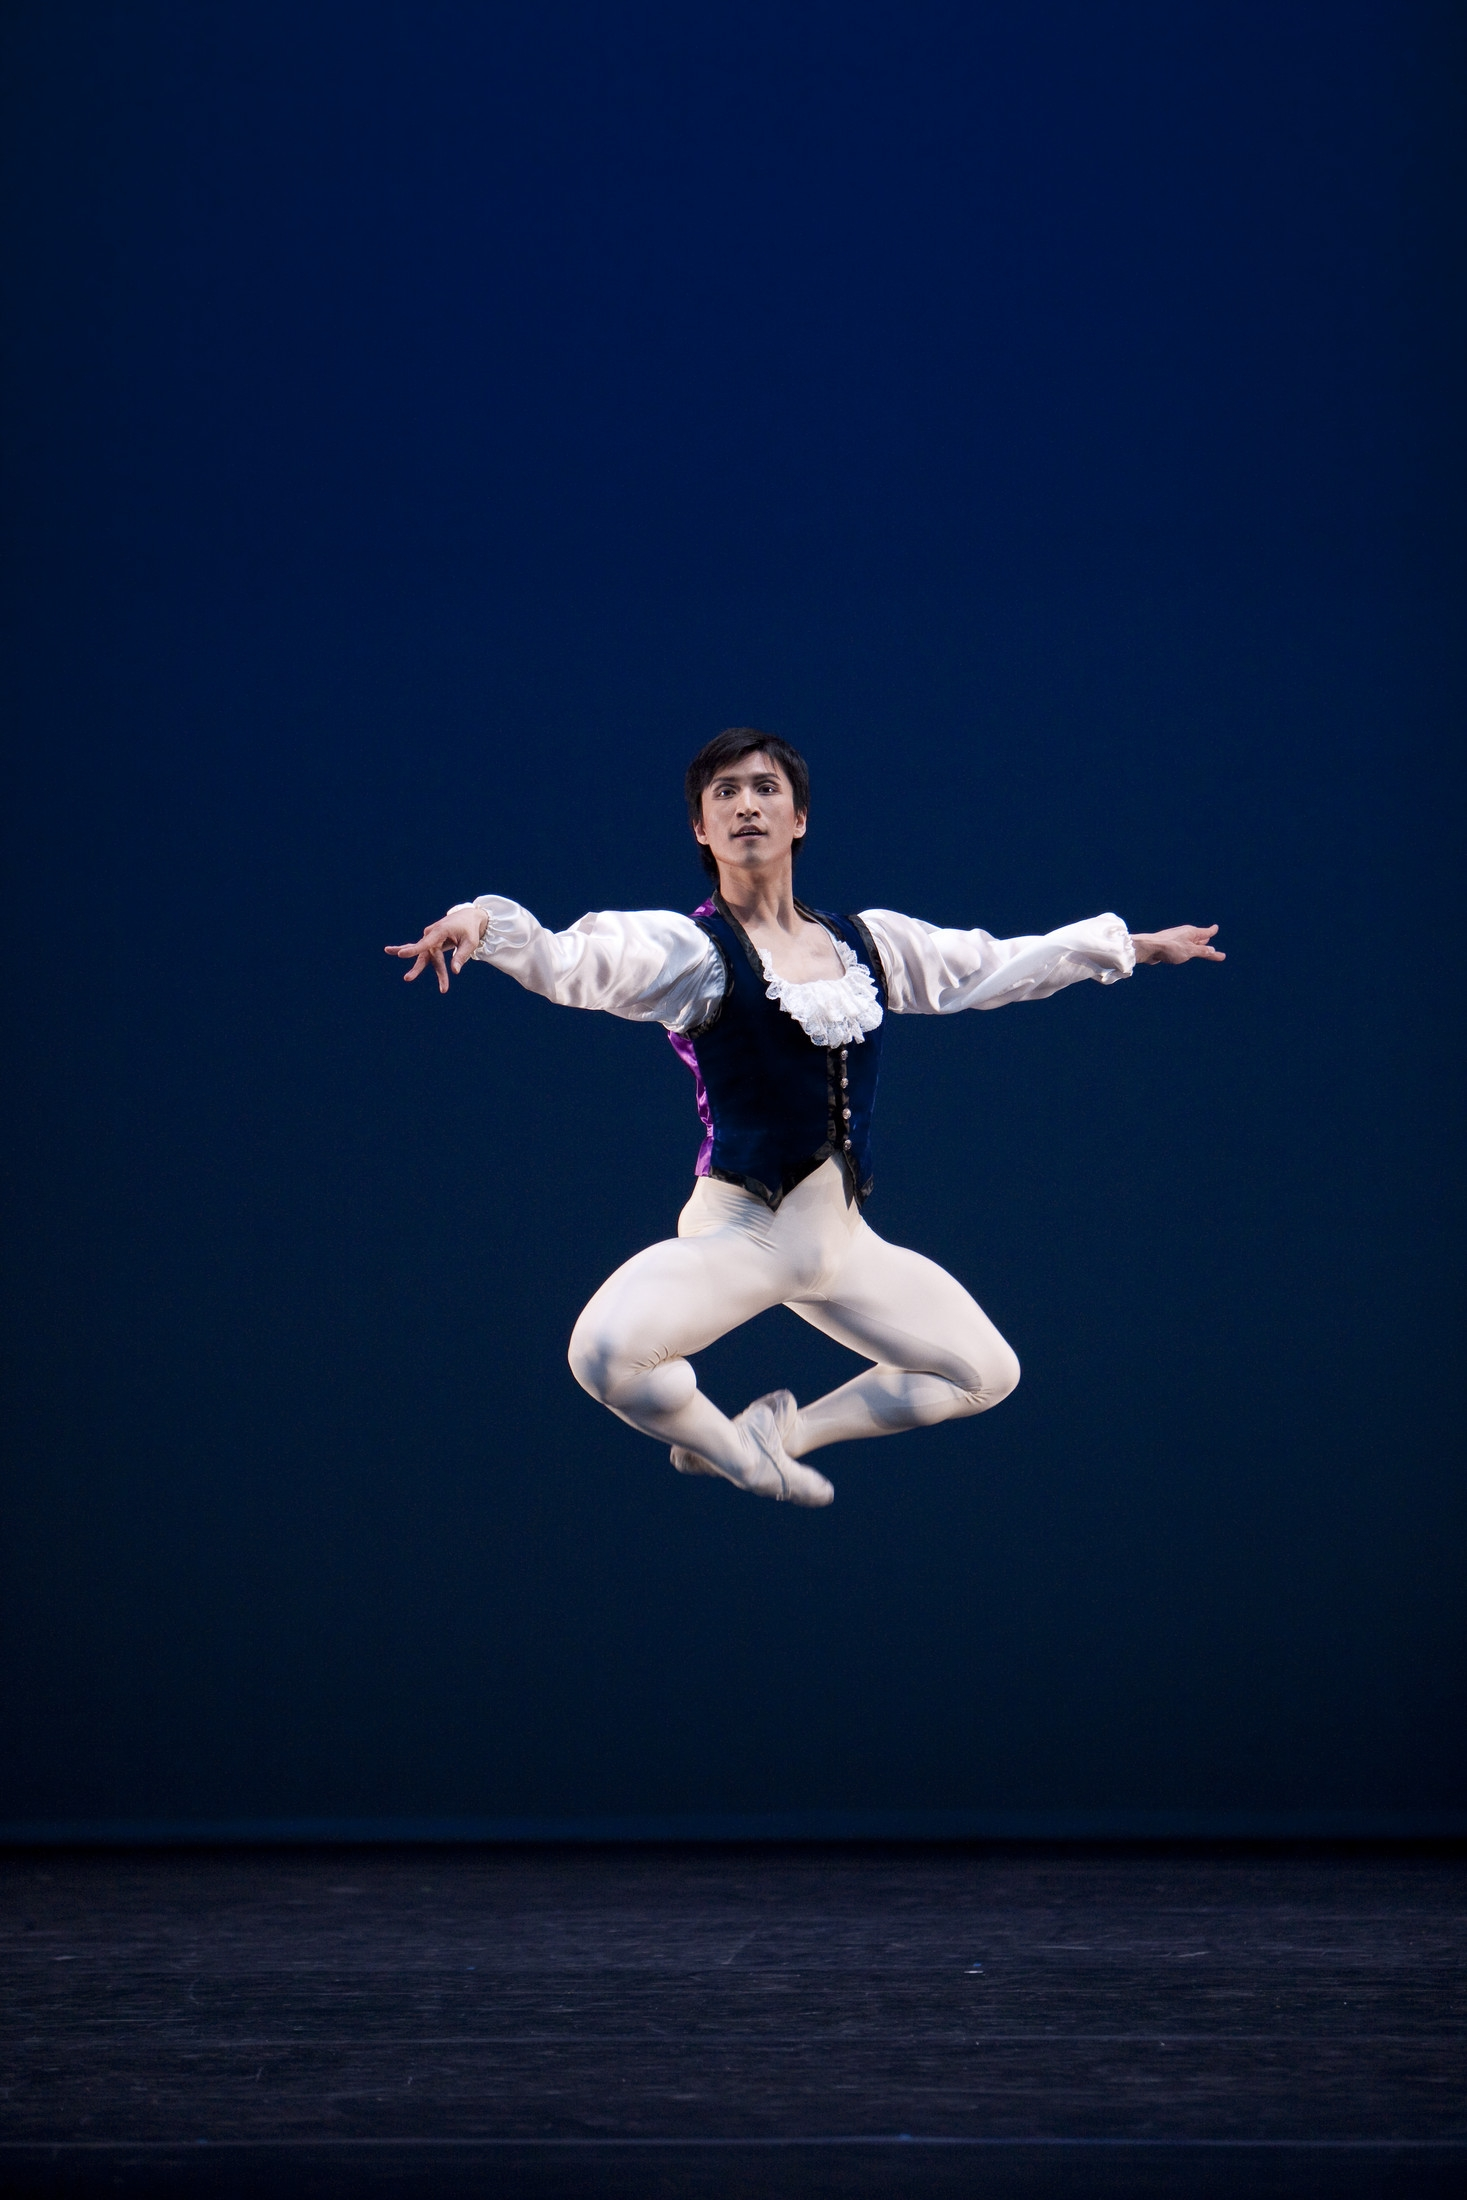 male ballet dancer in white tights jumping high